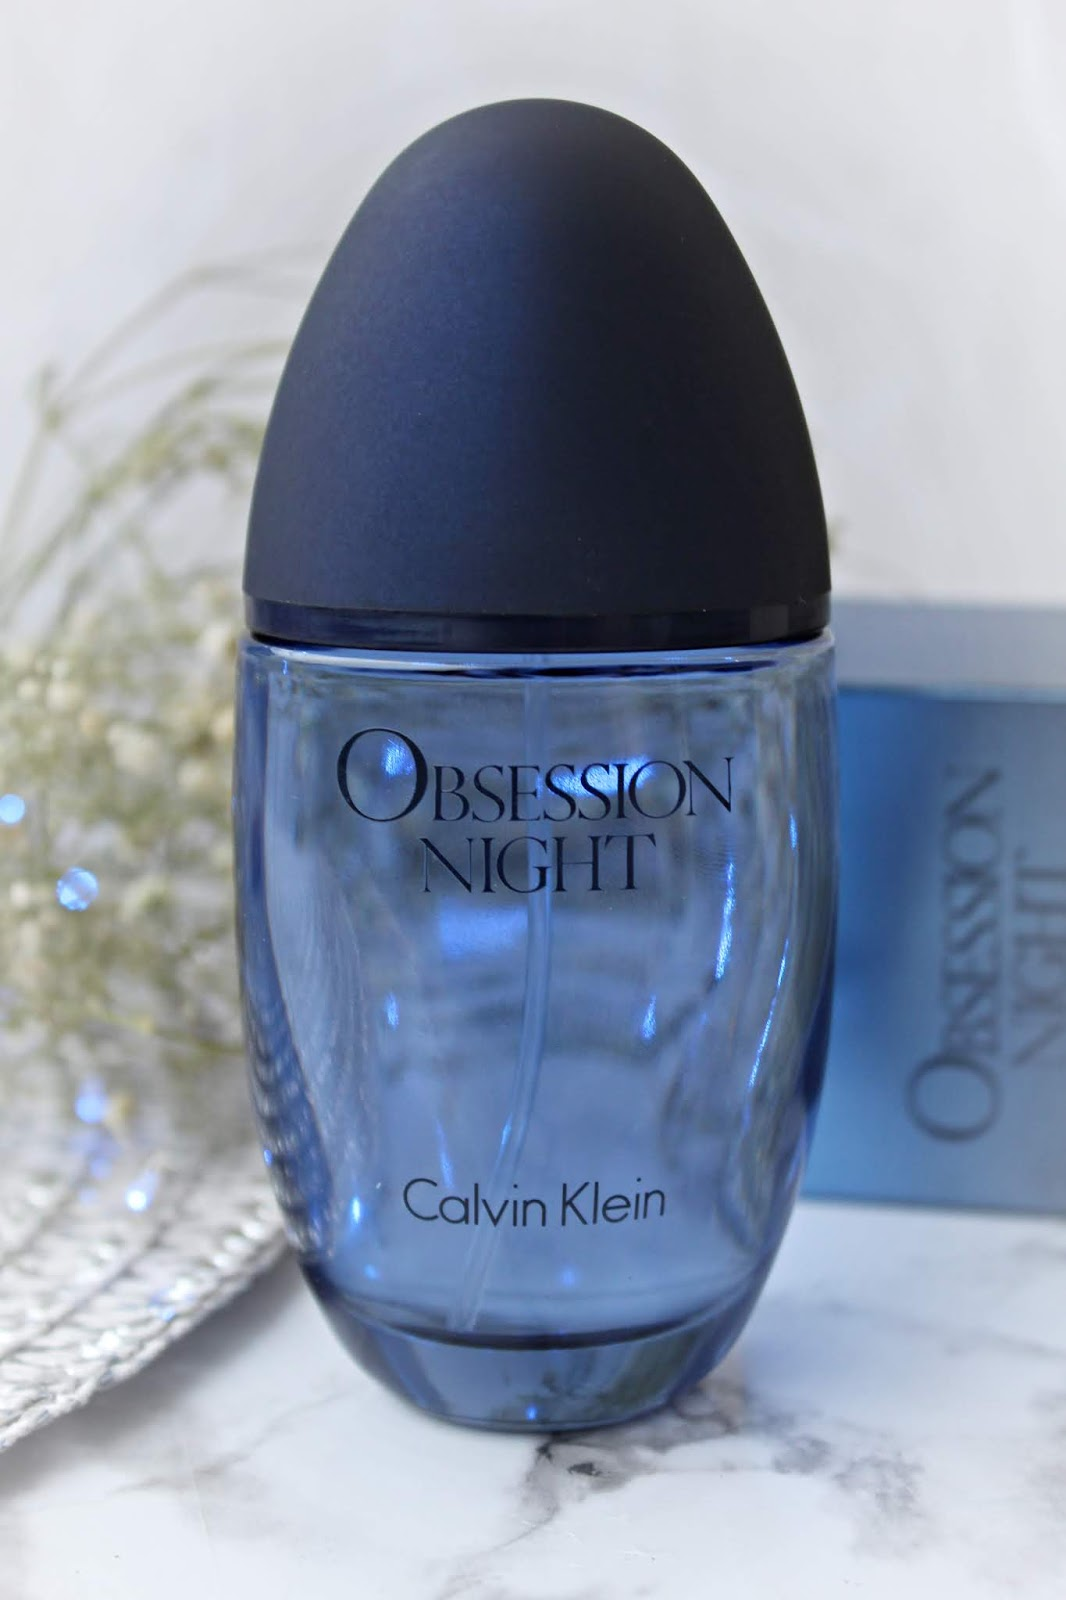 Calvin Klein Obsession Night